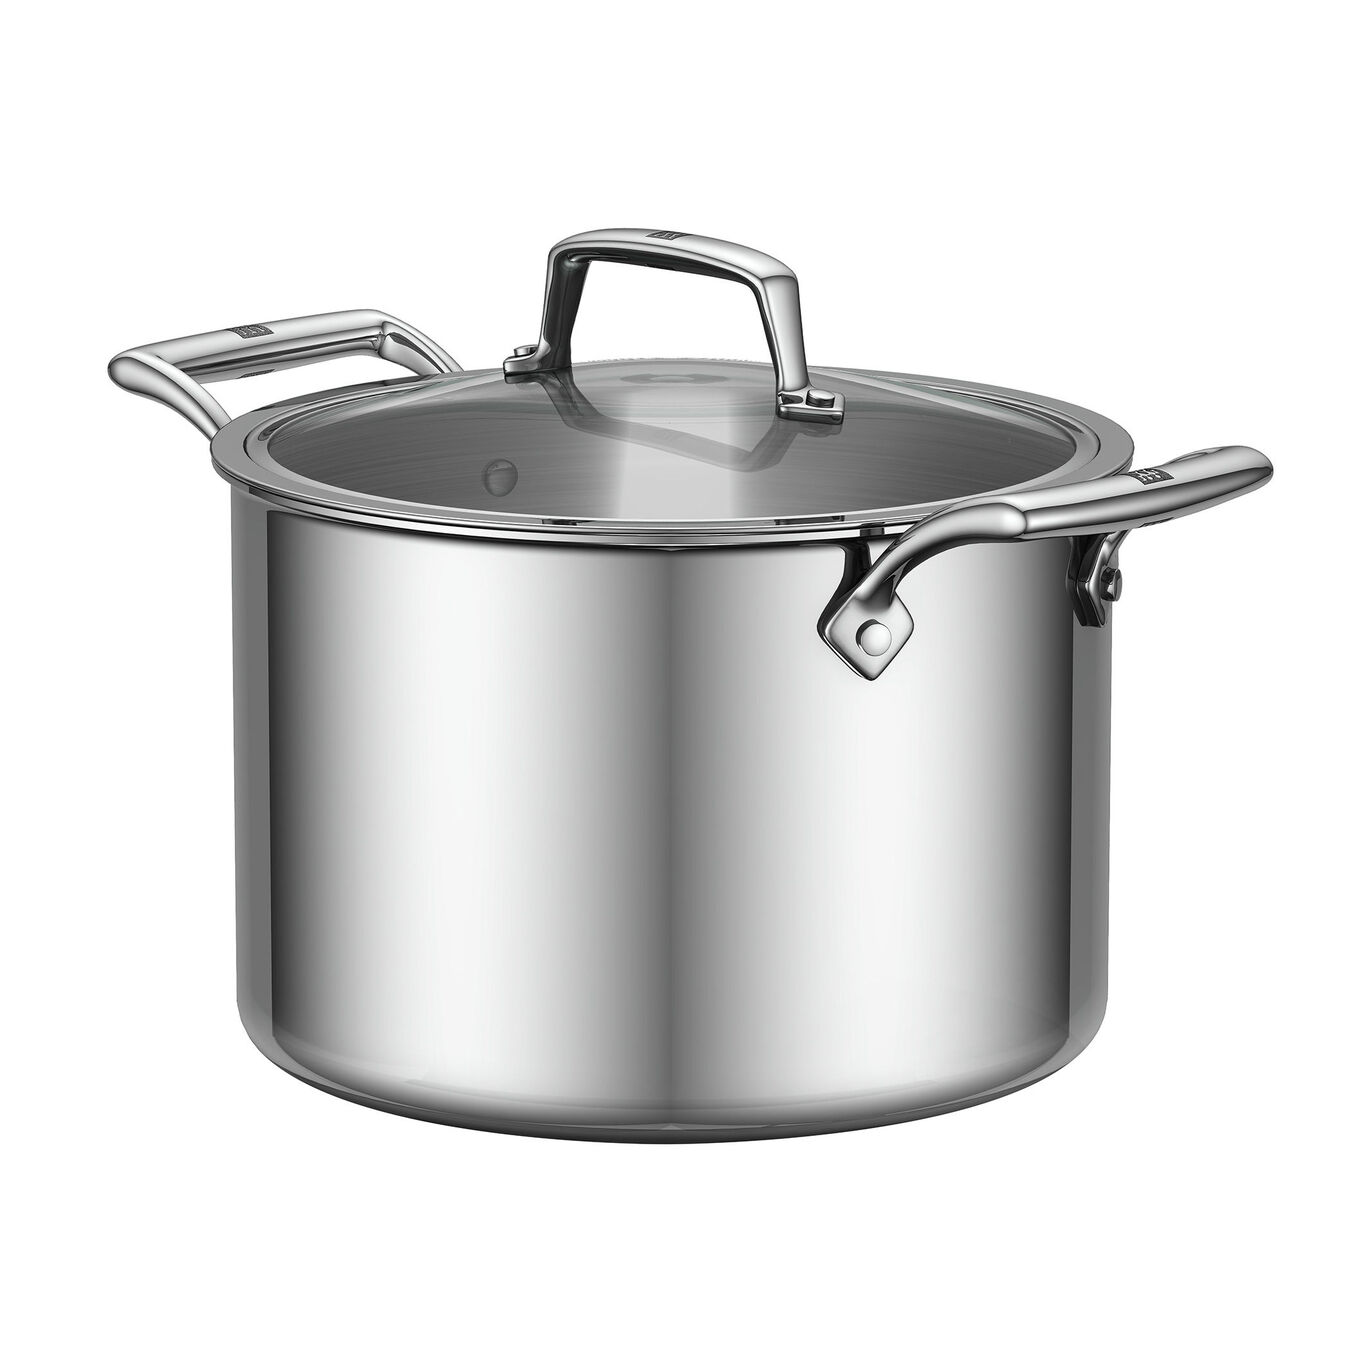 8-qt Stainless Steel Stock Pot w/Lid,,large 1